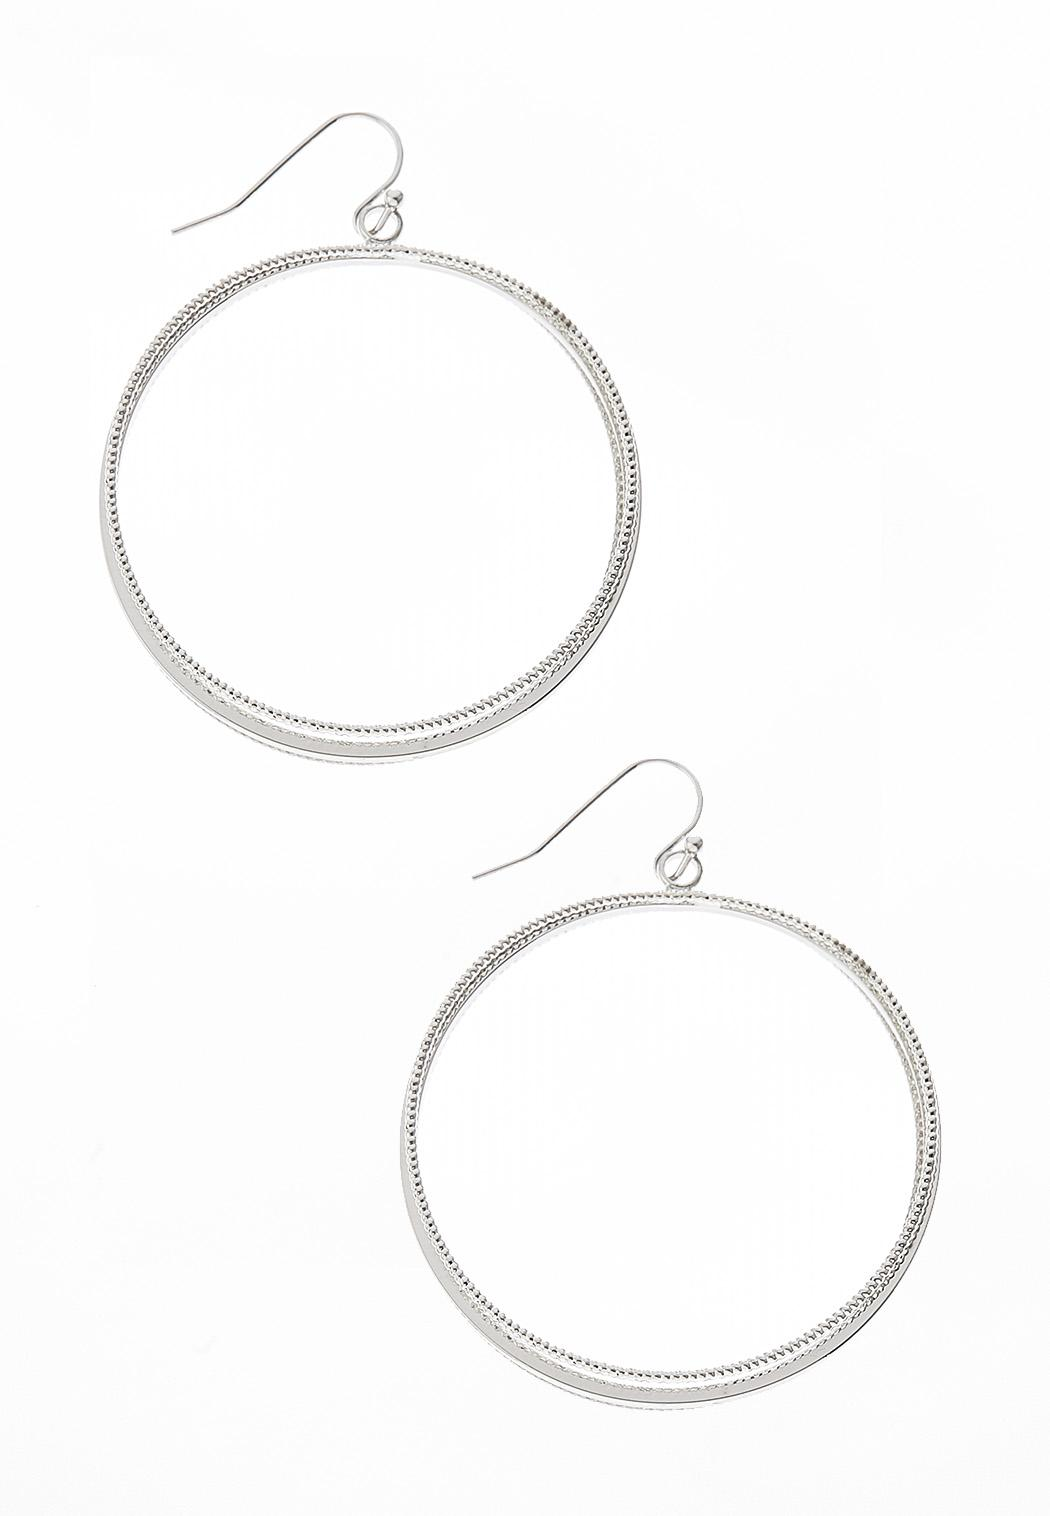 3 Row Metal Hoop Earrings